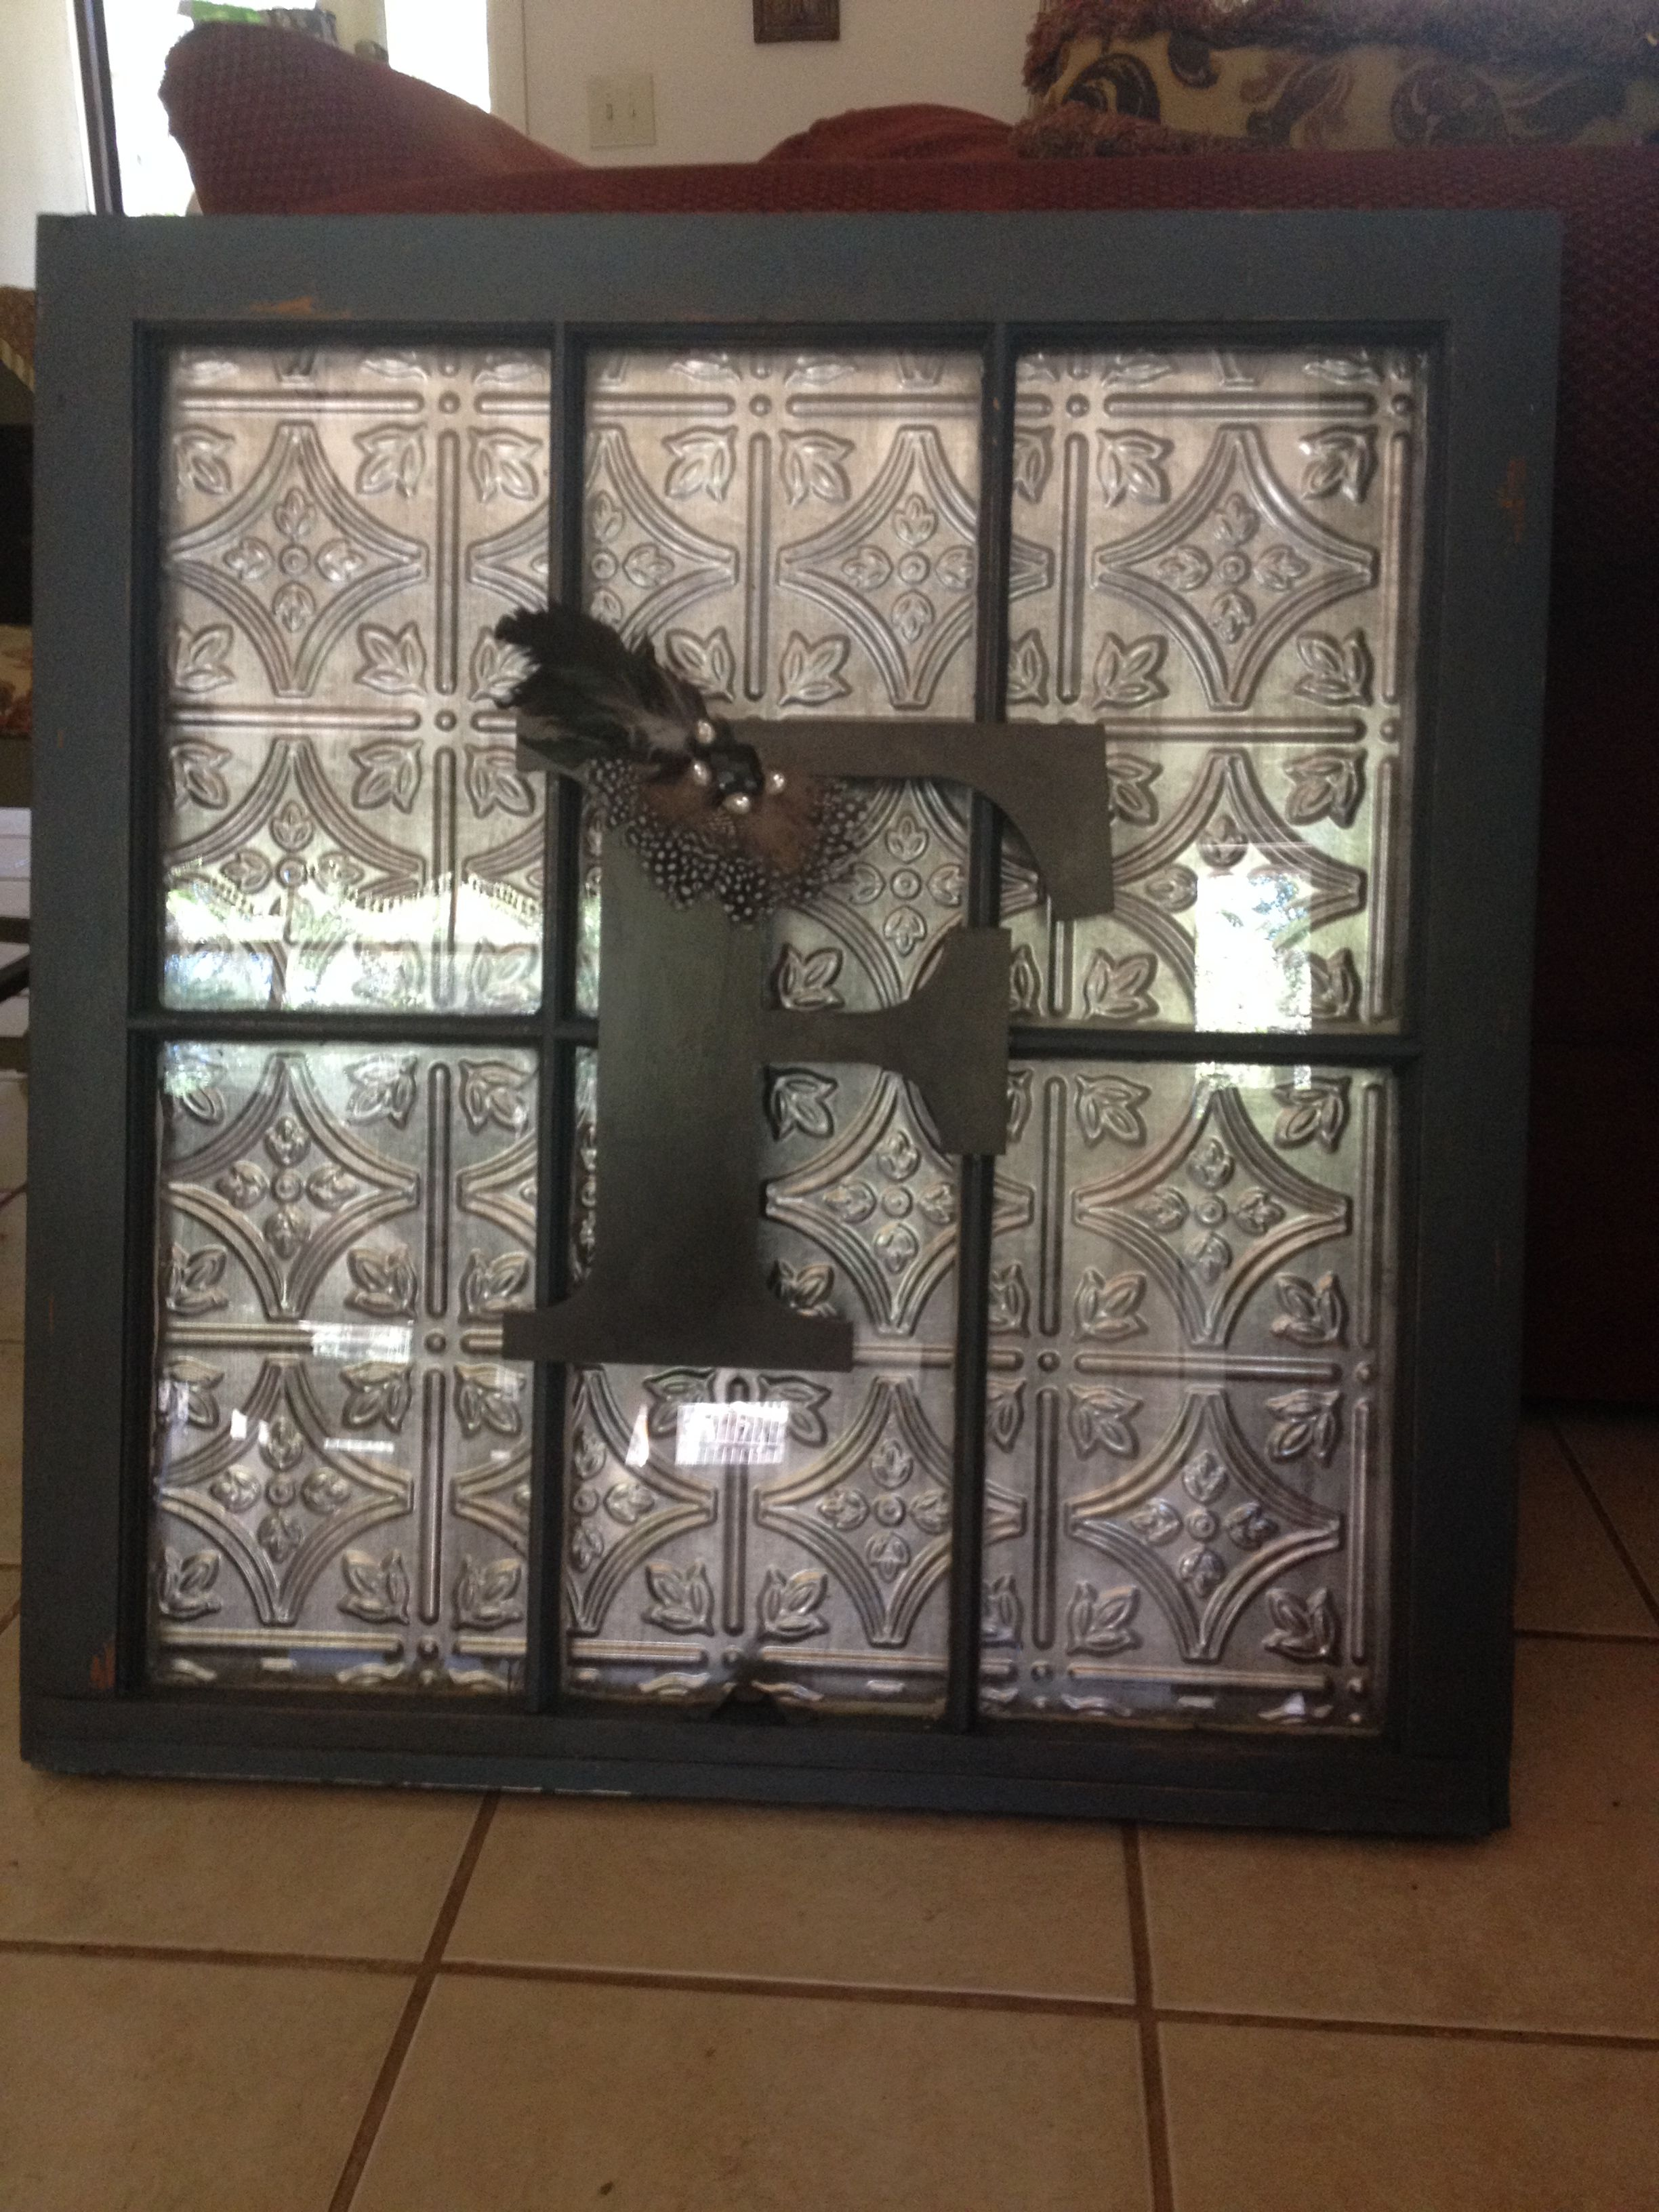 Pin By Tommie Ann Fortune On Decor Ideas Window Crafts Old Window Crafts Old Window Projects